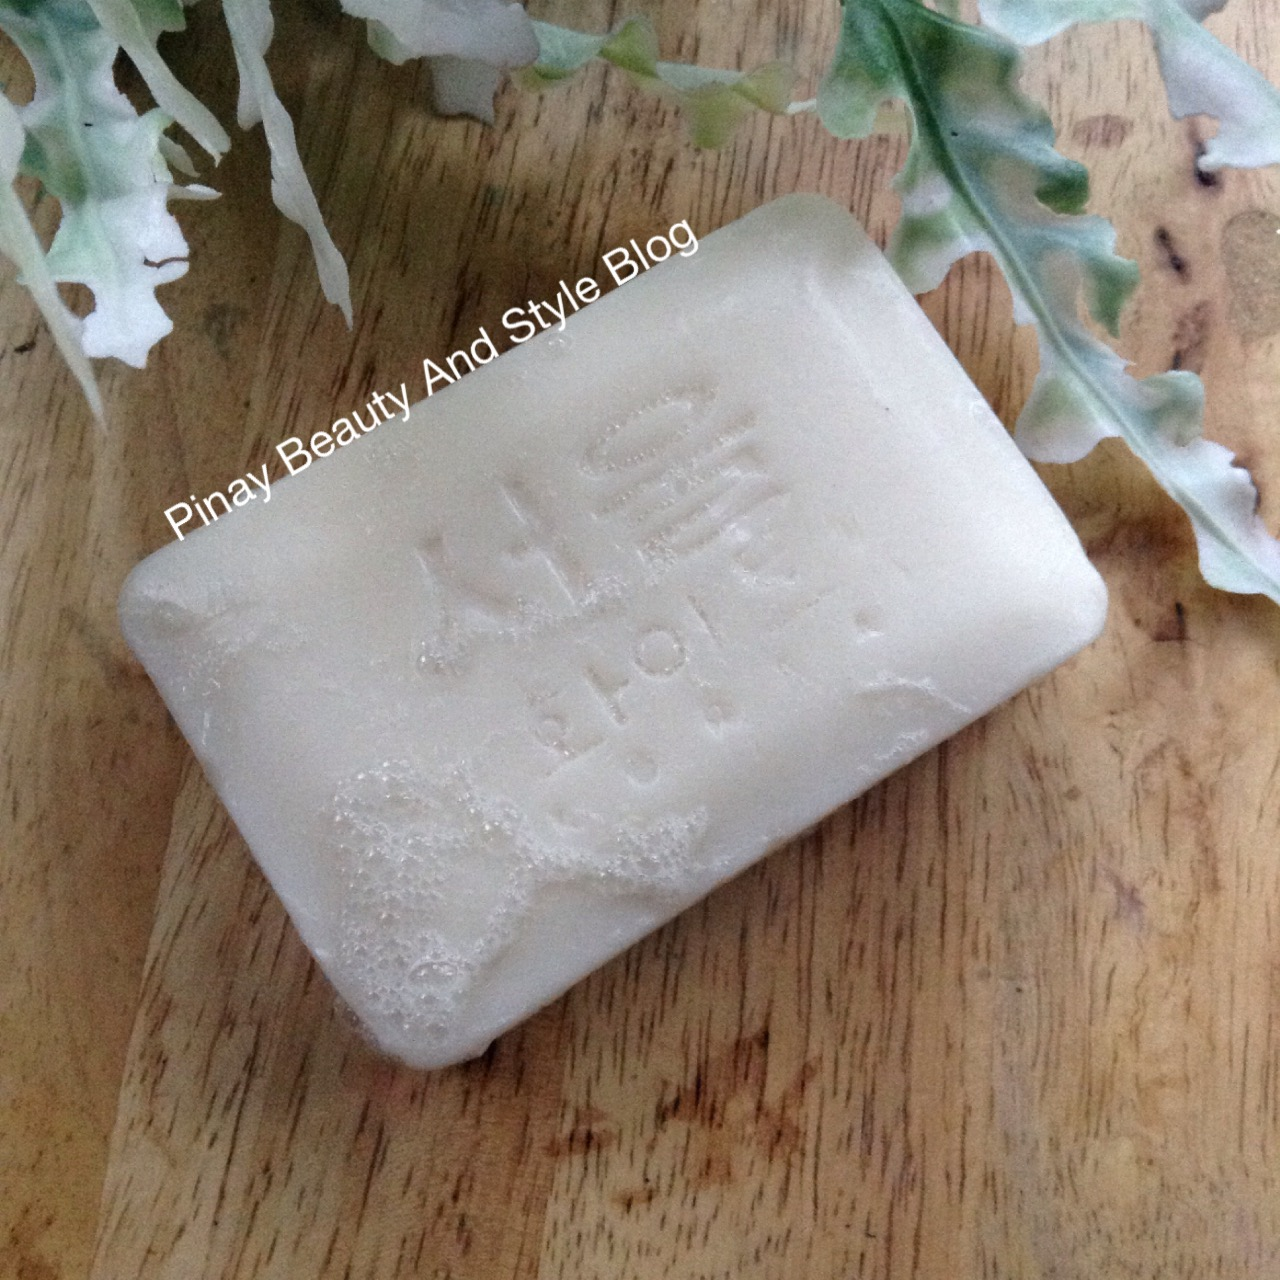 Pinay Beauty And Style Seoul White Korea Double Whitening Soap I Give This My Seal Of Approval